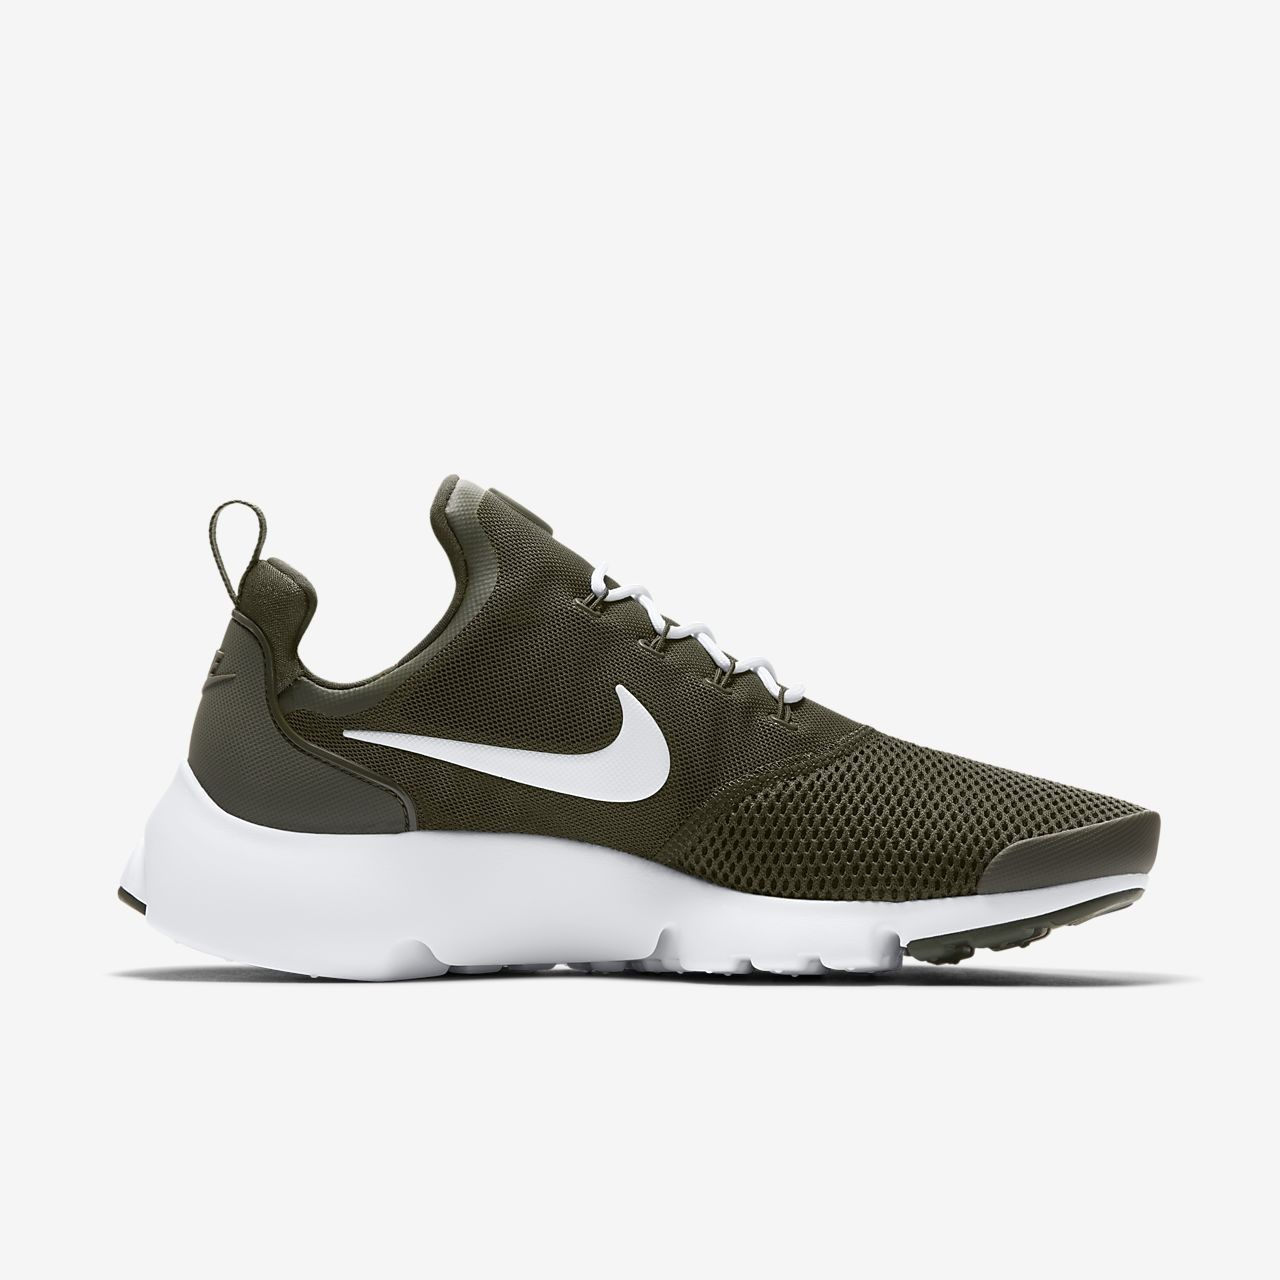 Nike Homme Chaussures Chaussures Presto Homme txY8w5qEY